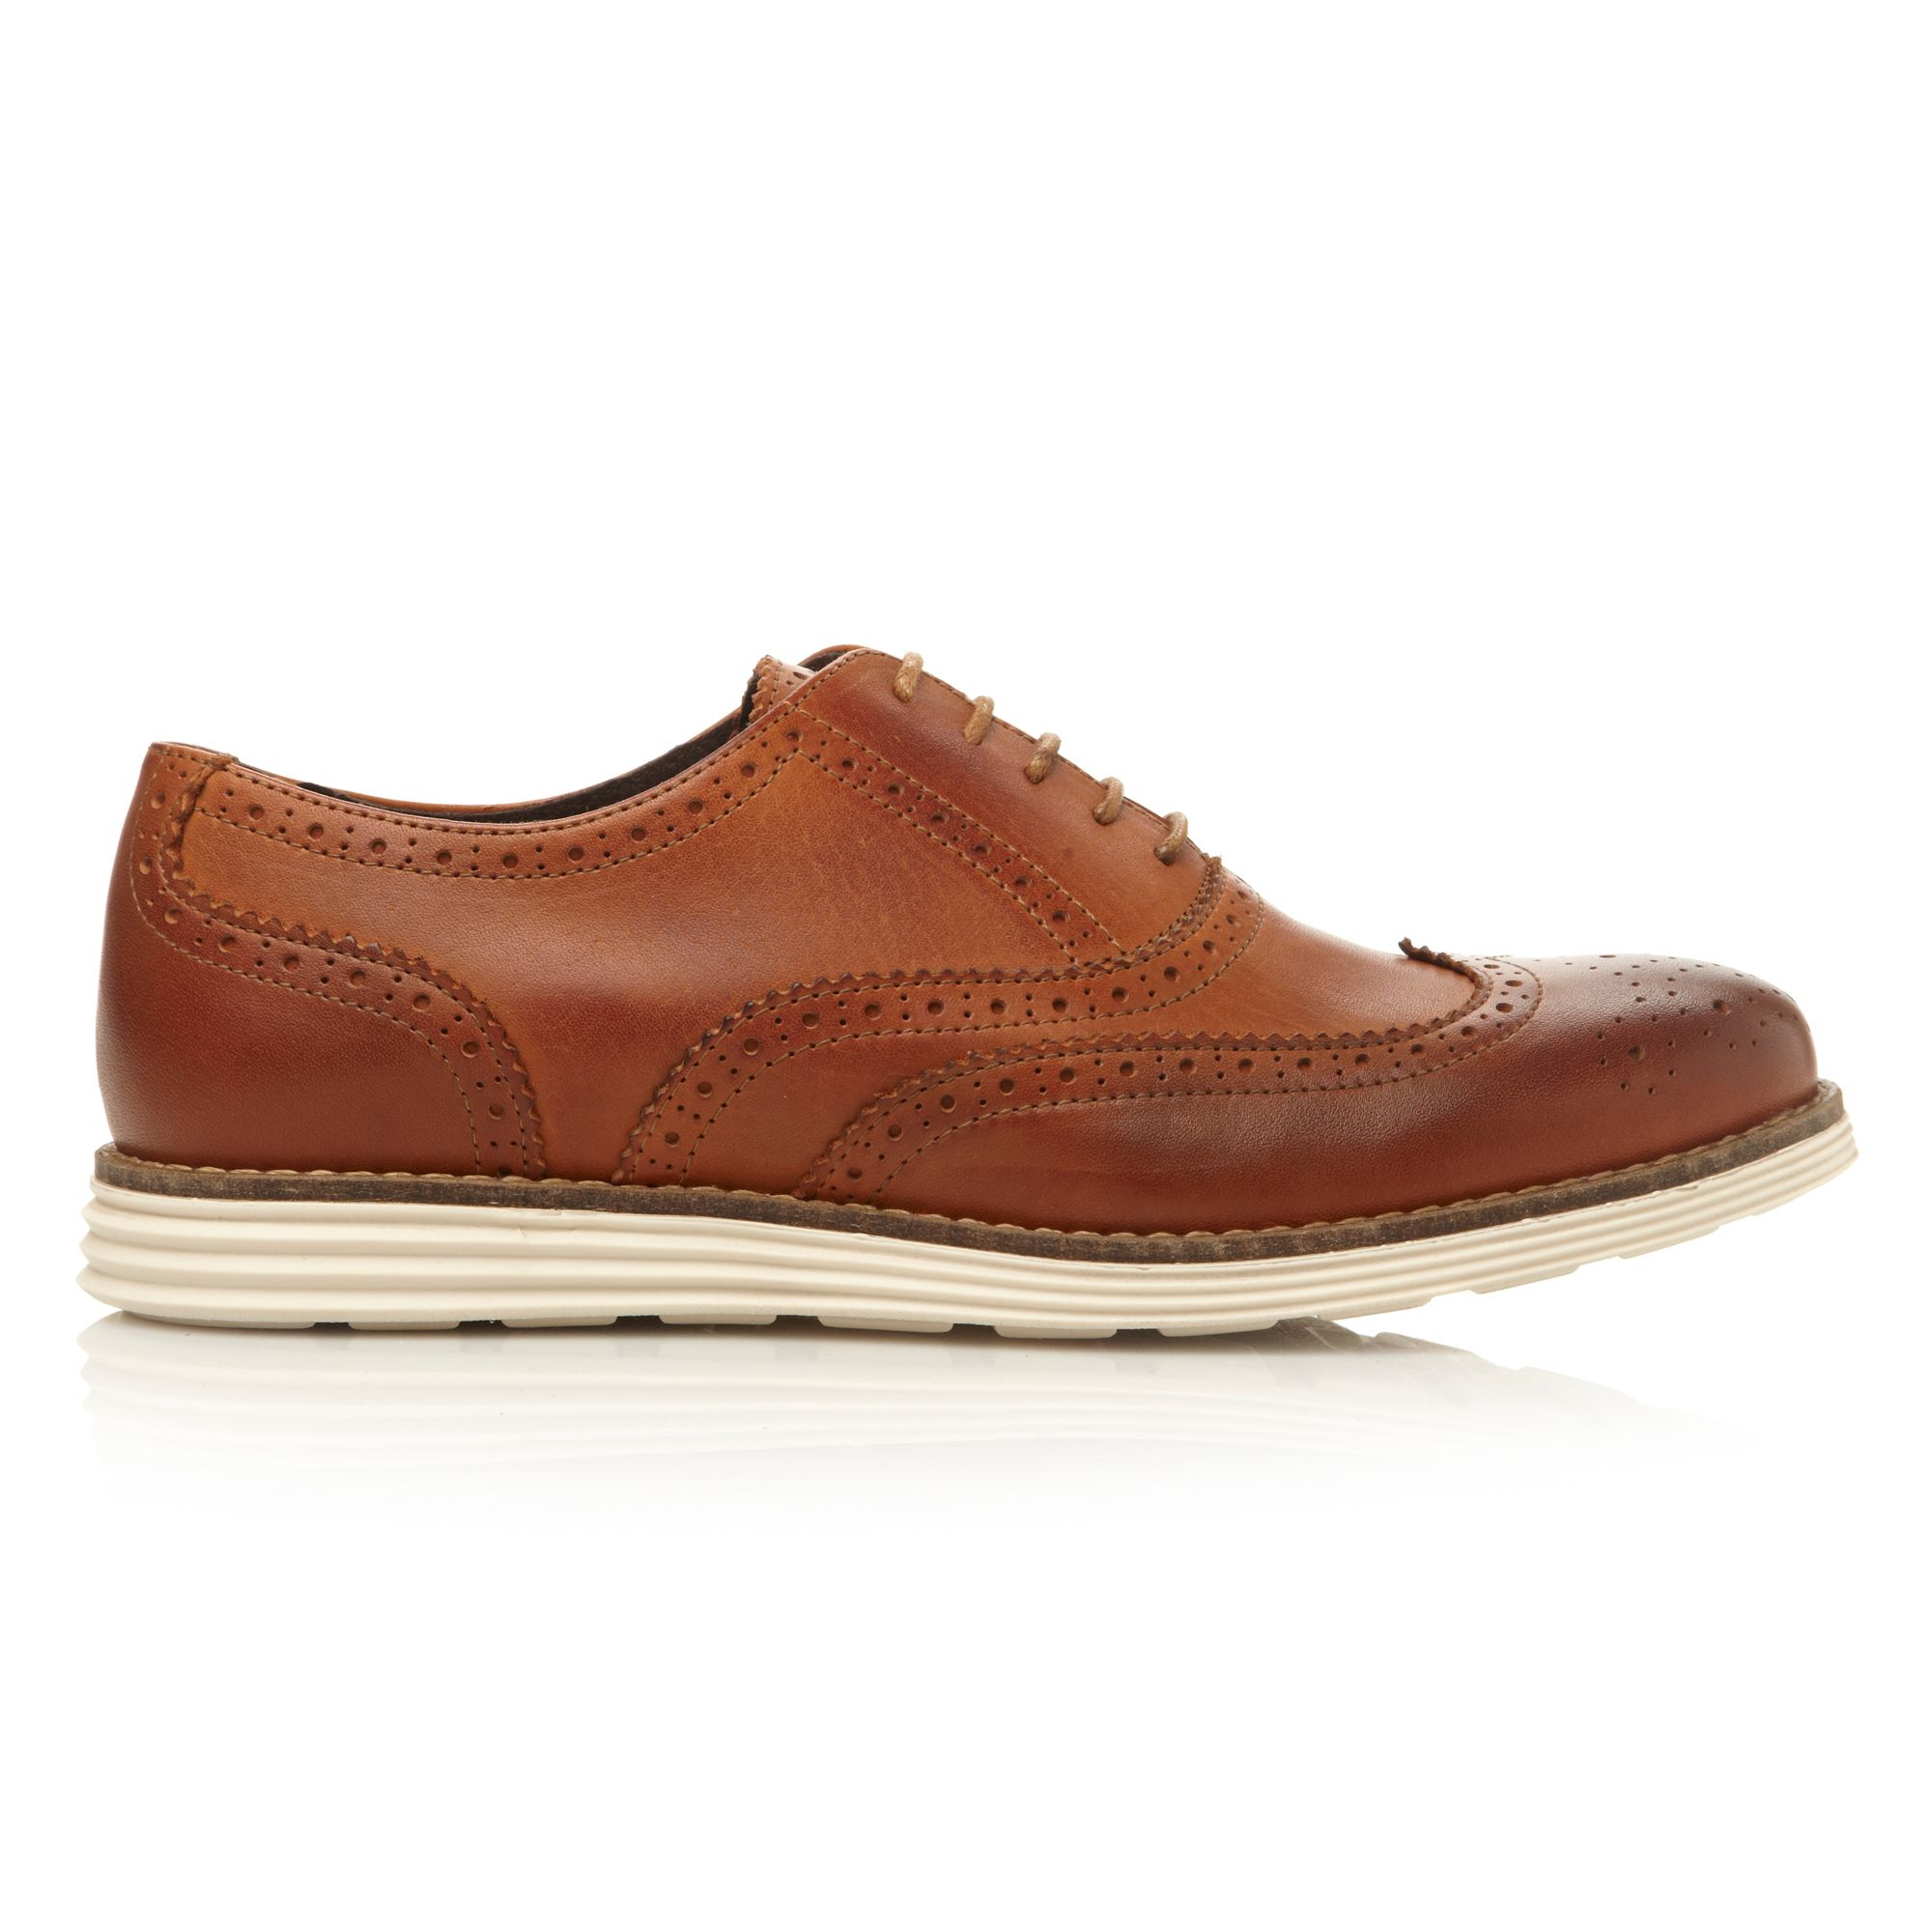 Dune Bayside Lace Up White Wedge Sole Brogues In Brown For